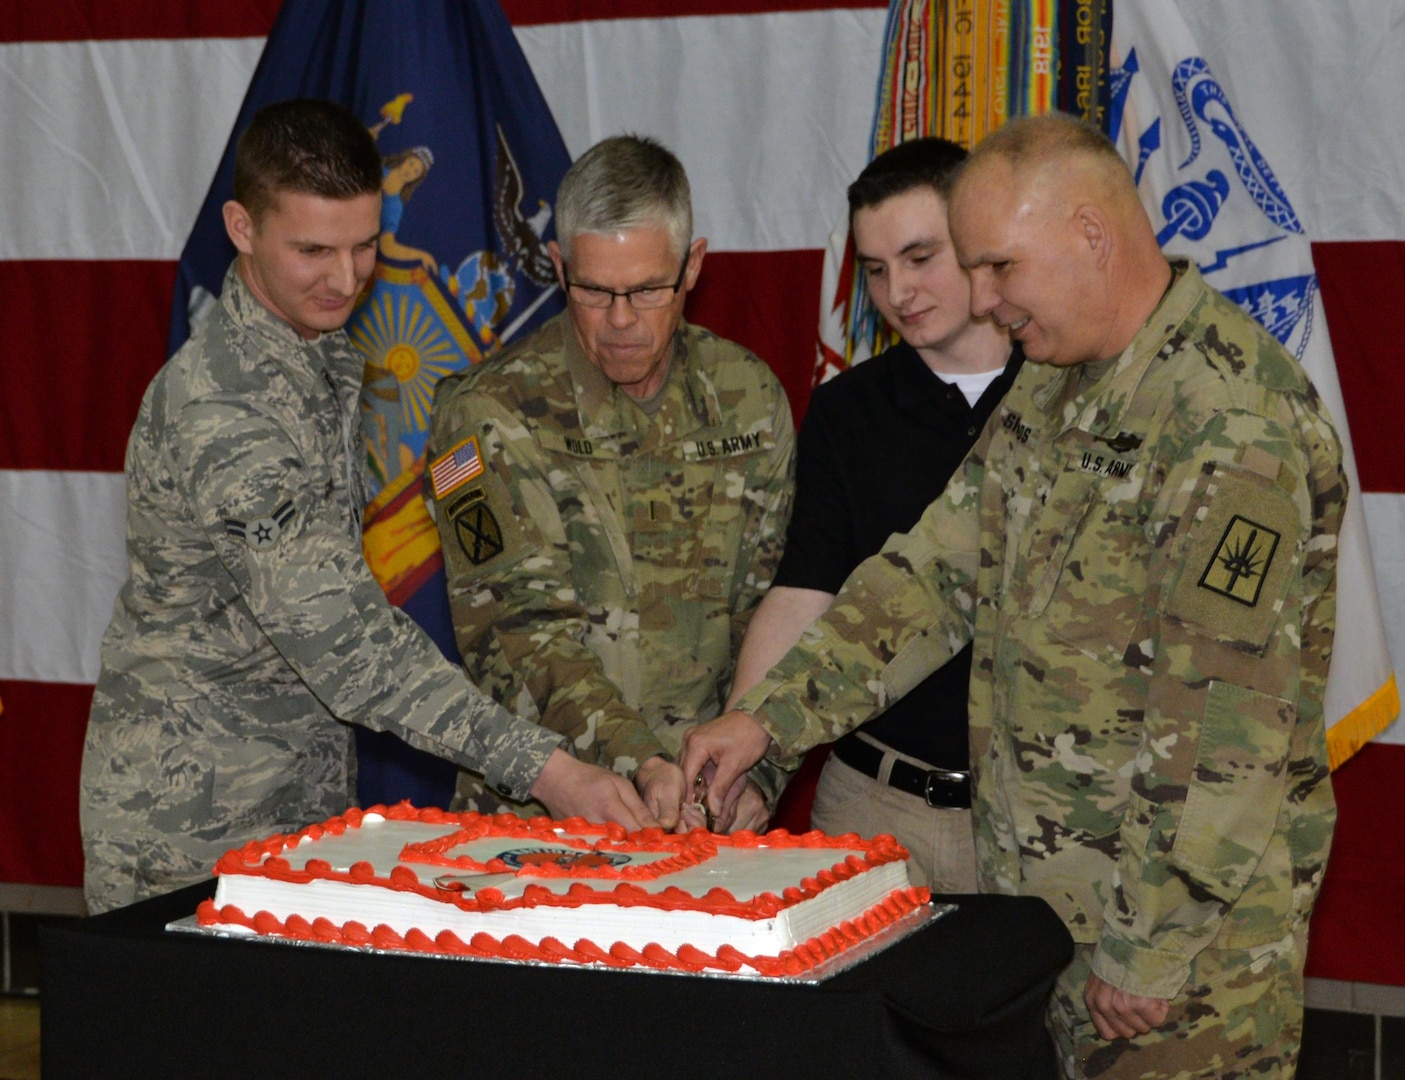 Brig. Gen. Raymond Shields, assistant adjutant general, Army, far right, joins the oldest and newest members of the New York National Guard to cut a cake in celebration of the National Guard's 380th birthday at New York National Guard headquarters on Dec. 13, 2016. The new and old members are, from left, Airman Kevin Gabay, of the New York Air National Guard's 109th Airlift Wing;Chief Warrant Officer 5 Robert Wold, one of the New York Army National Guard's oldest serving Soldier; and  Pvt. Private Cameron Thompson, New York Army National Guard.